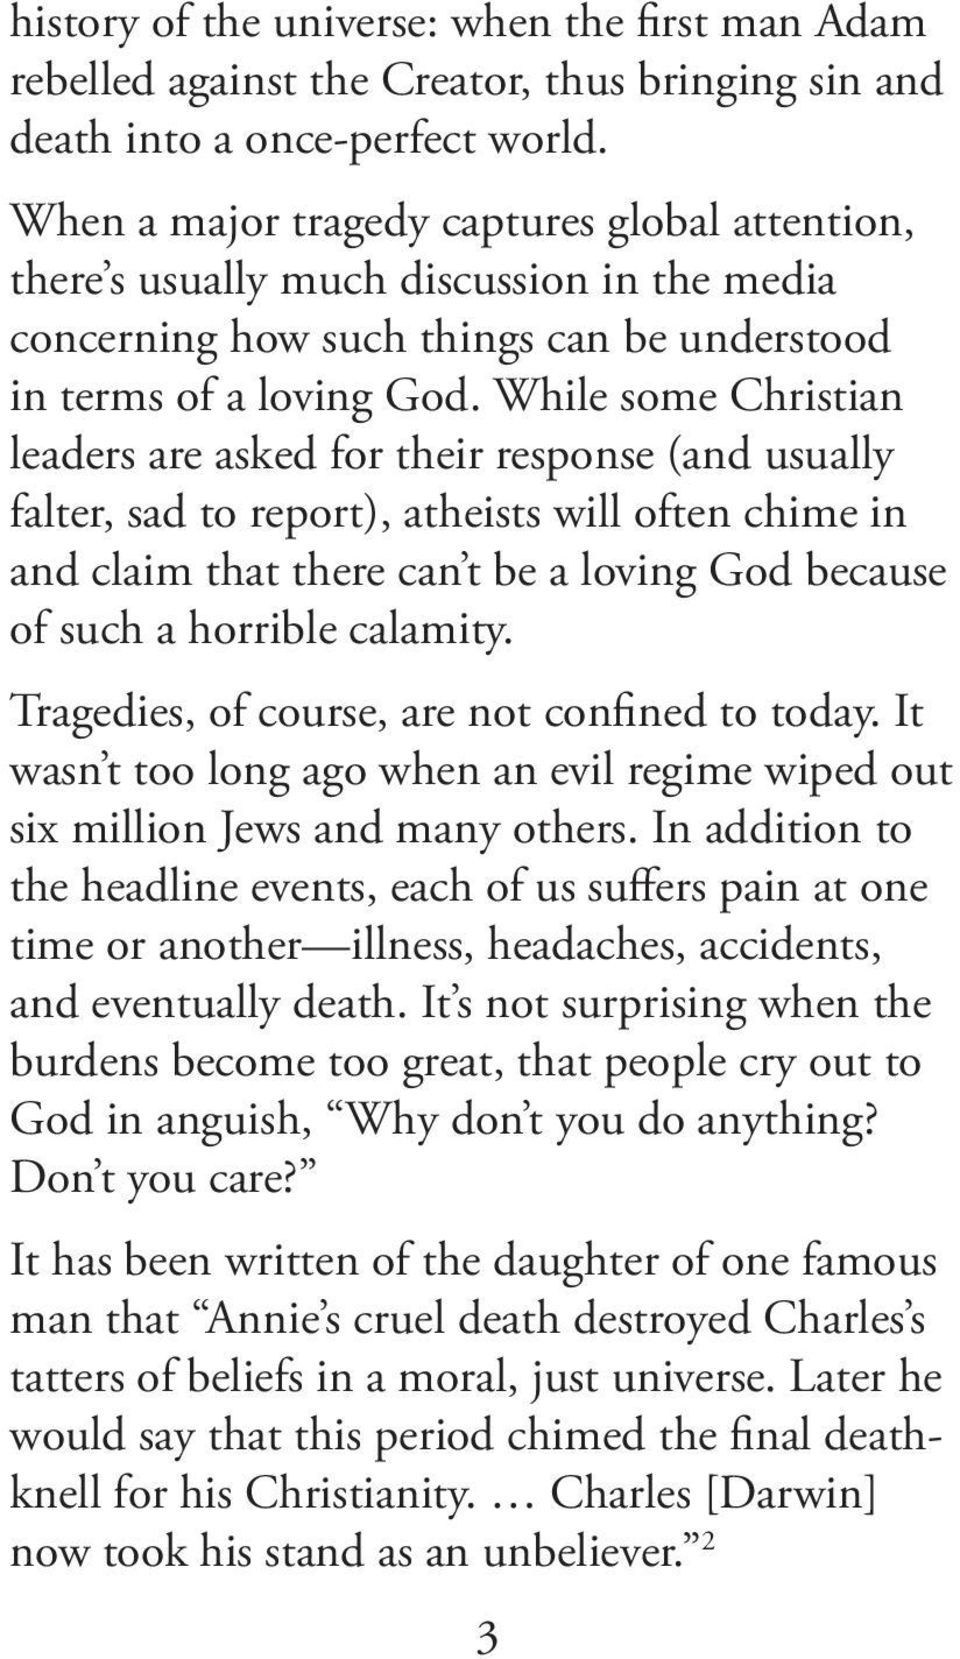 While some Christian leaders are asked for their response (and usually falter, sad to report), atheists will often chime in and claim that there can t be a loving God because of such a horrible